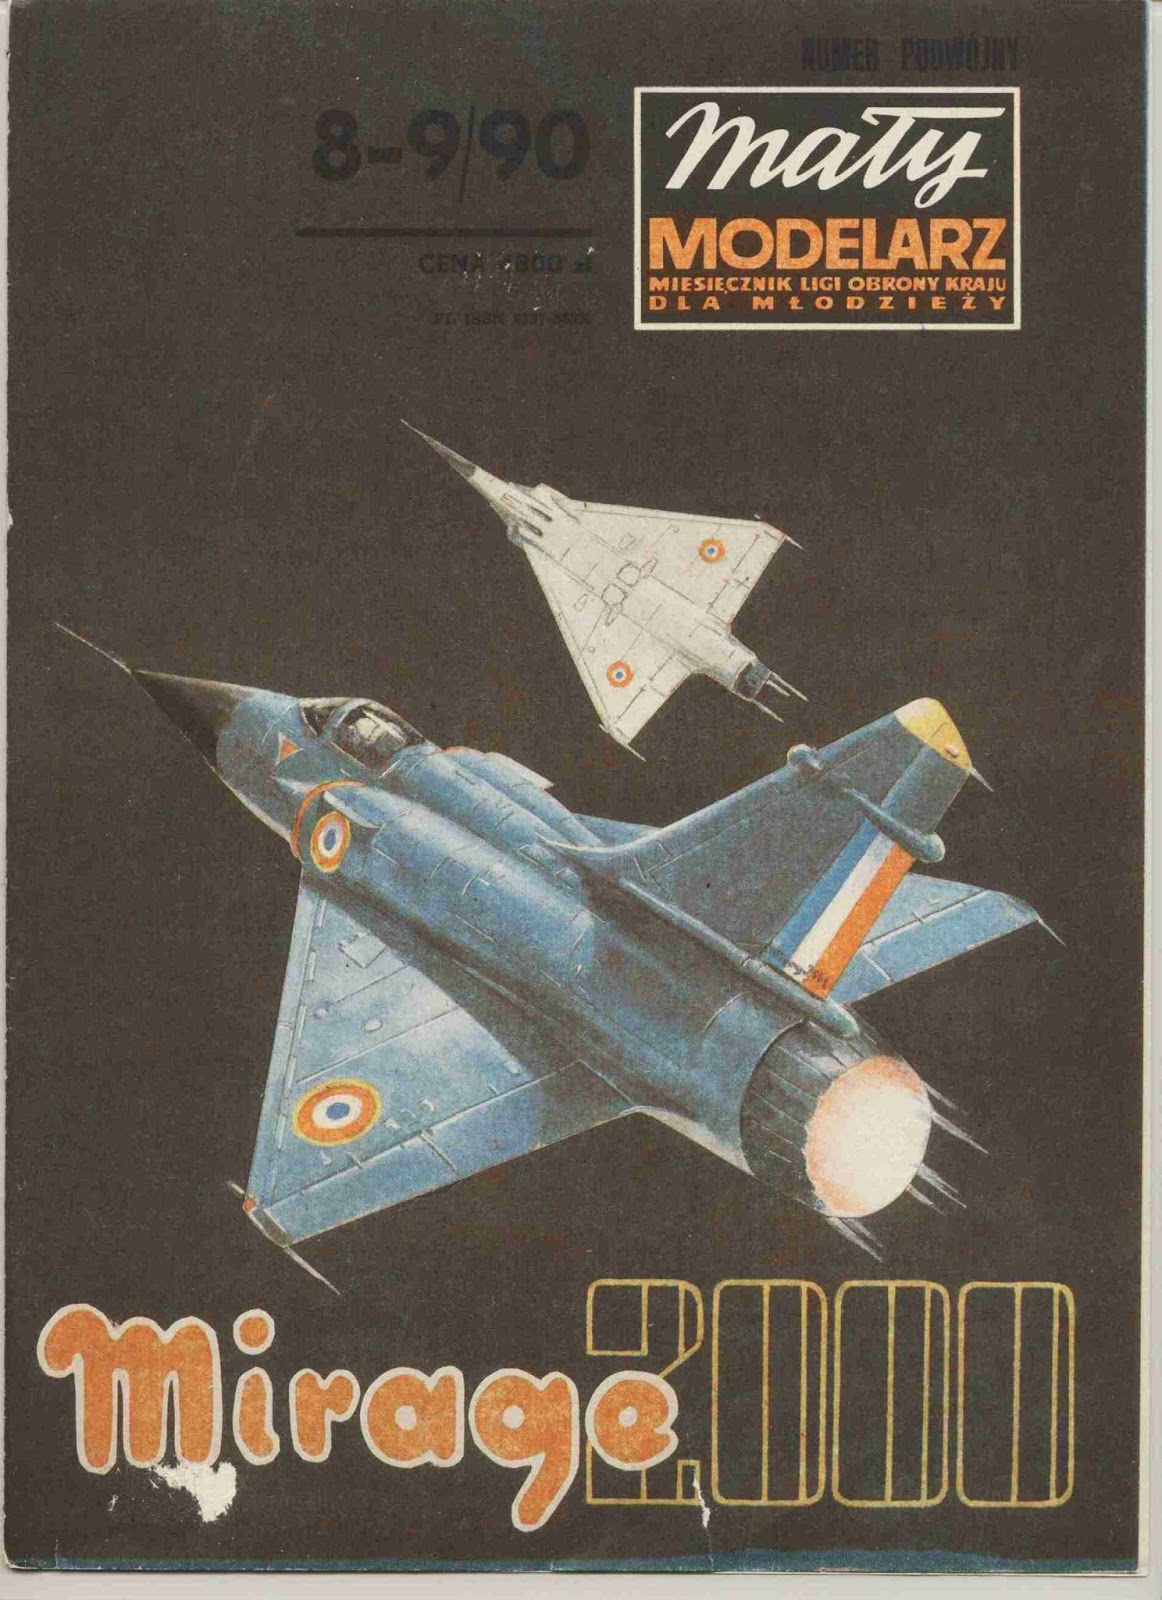 Papercraft military Archives - Page 24 of 27 - Free MOdelkits